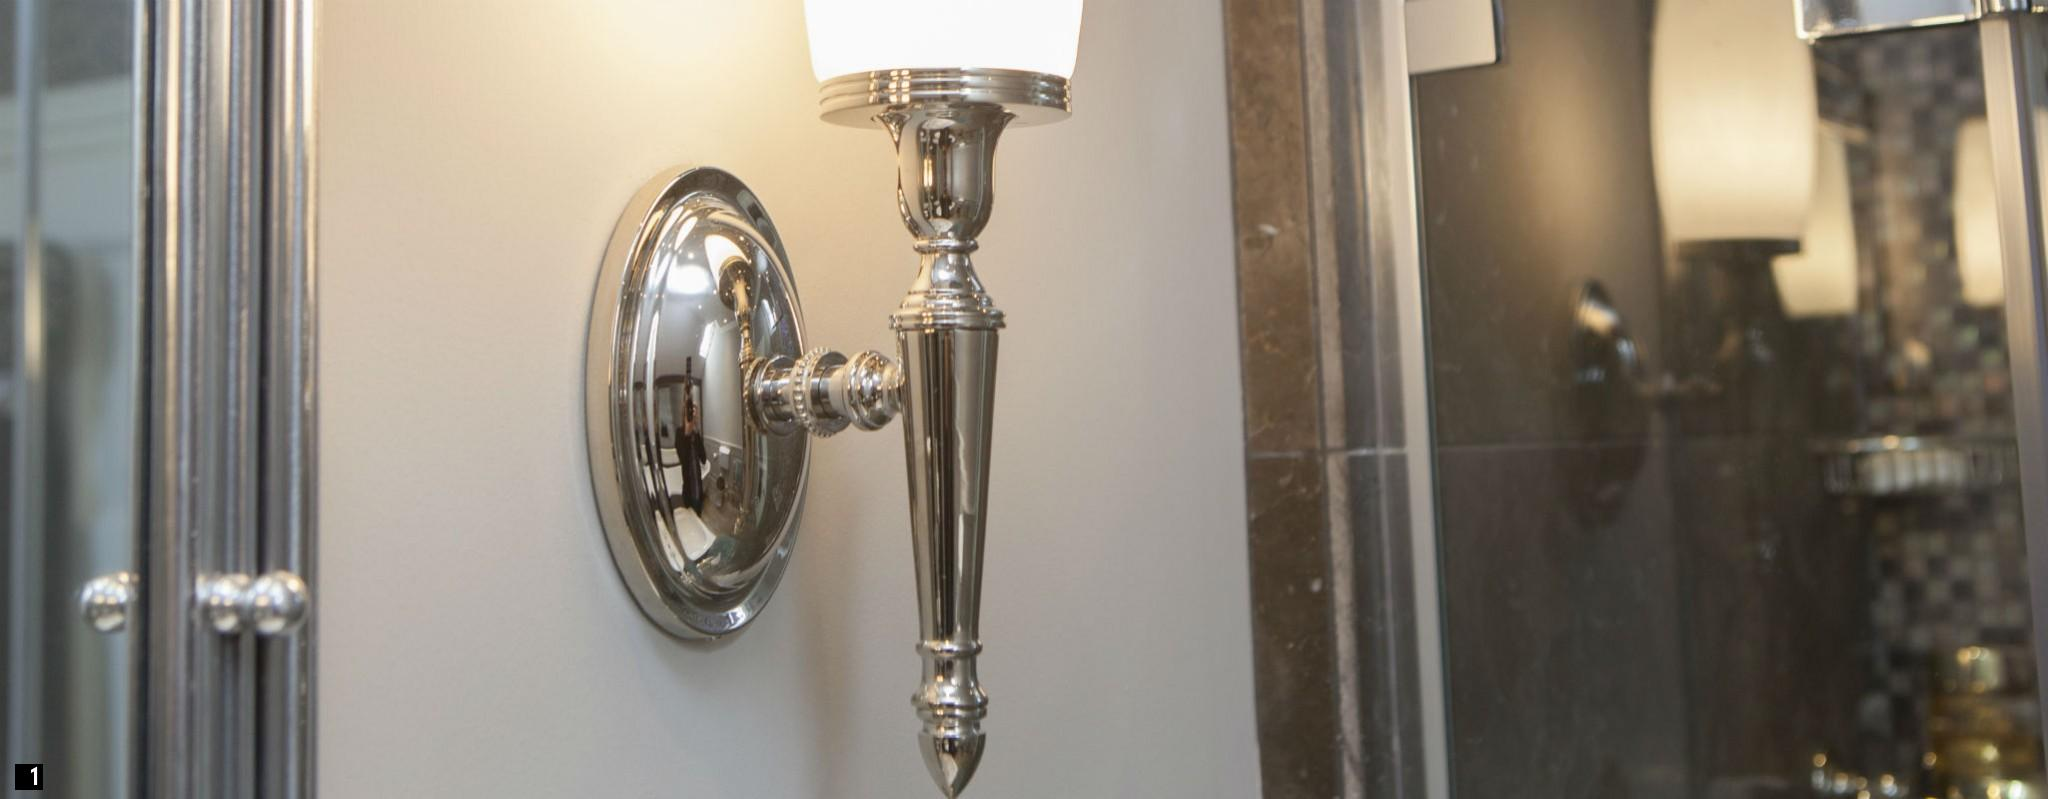 Nickel Traditional Bathroom Light